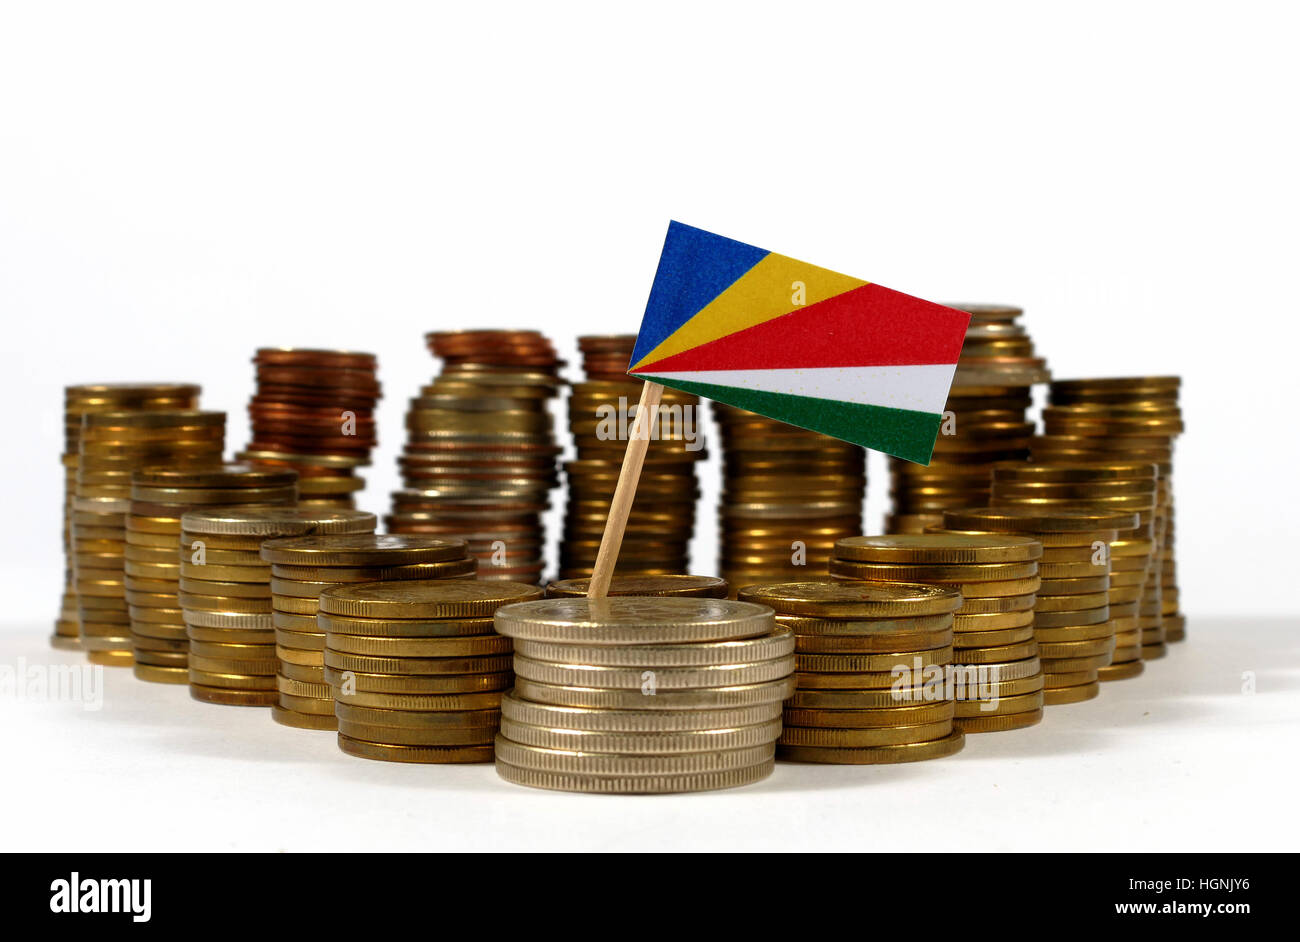 Seychelles flag waving with stack of money coins - Stock Image